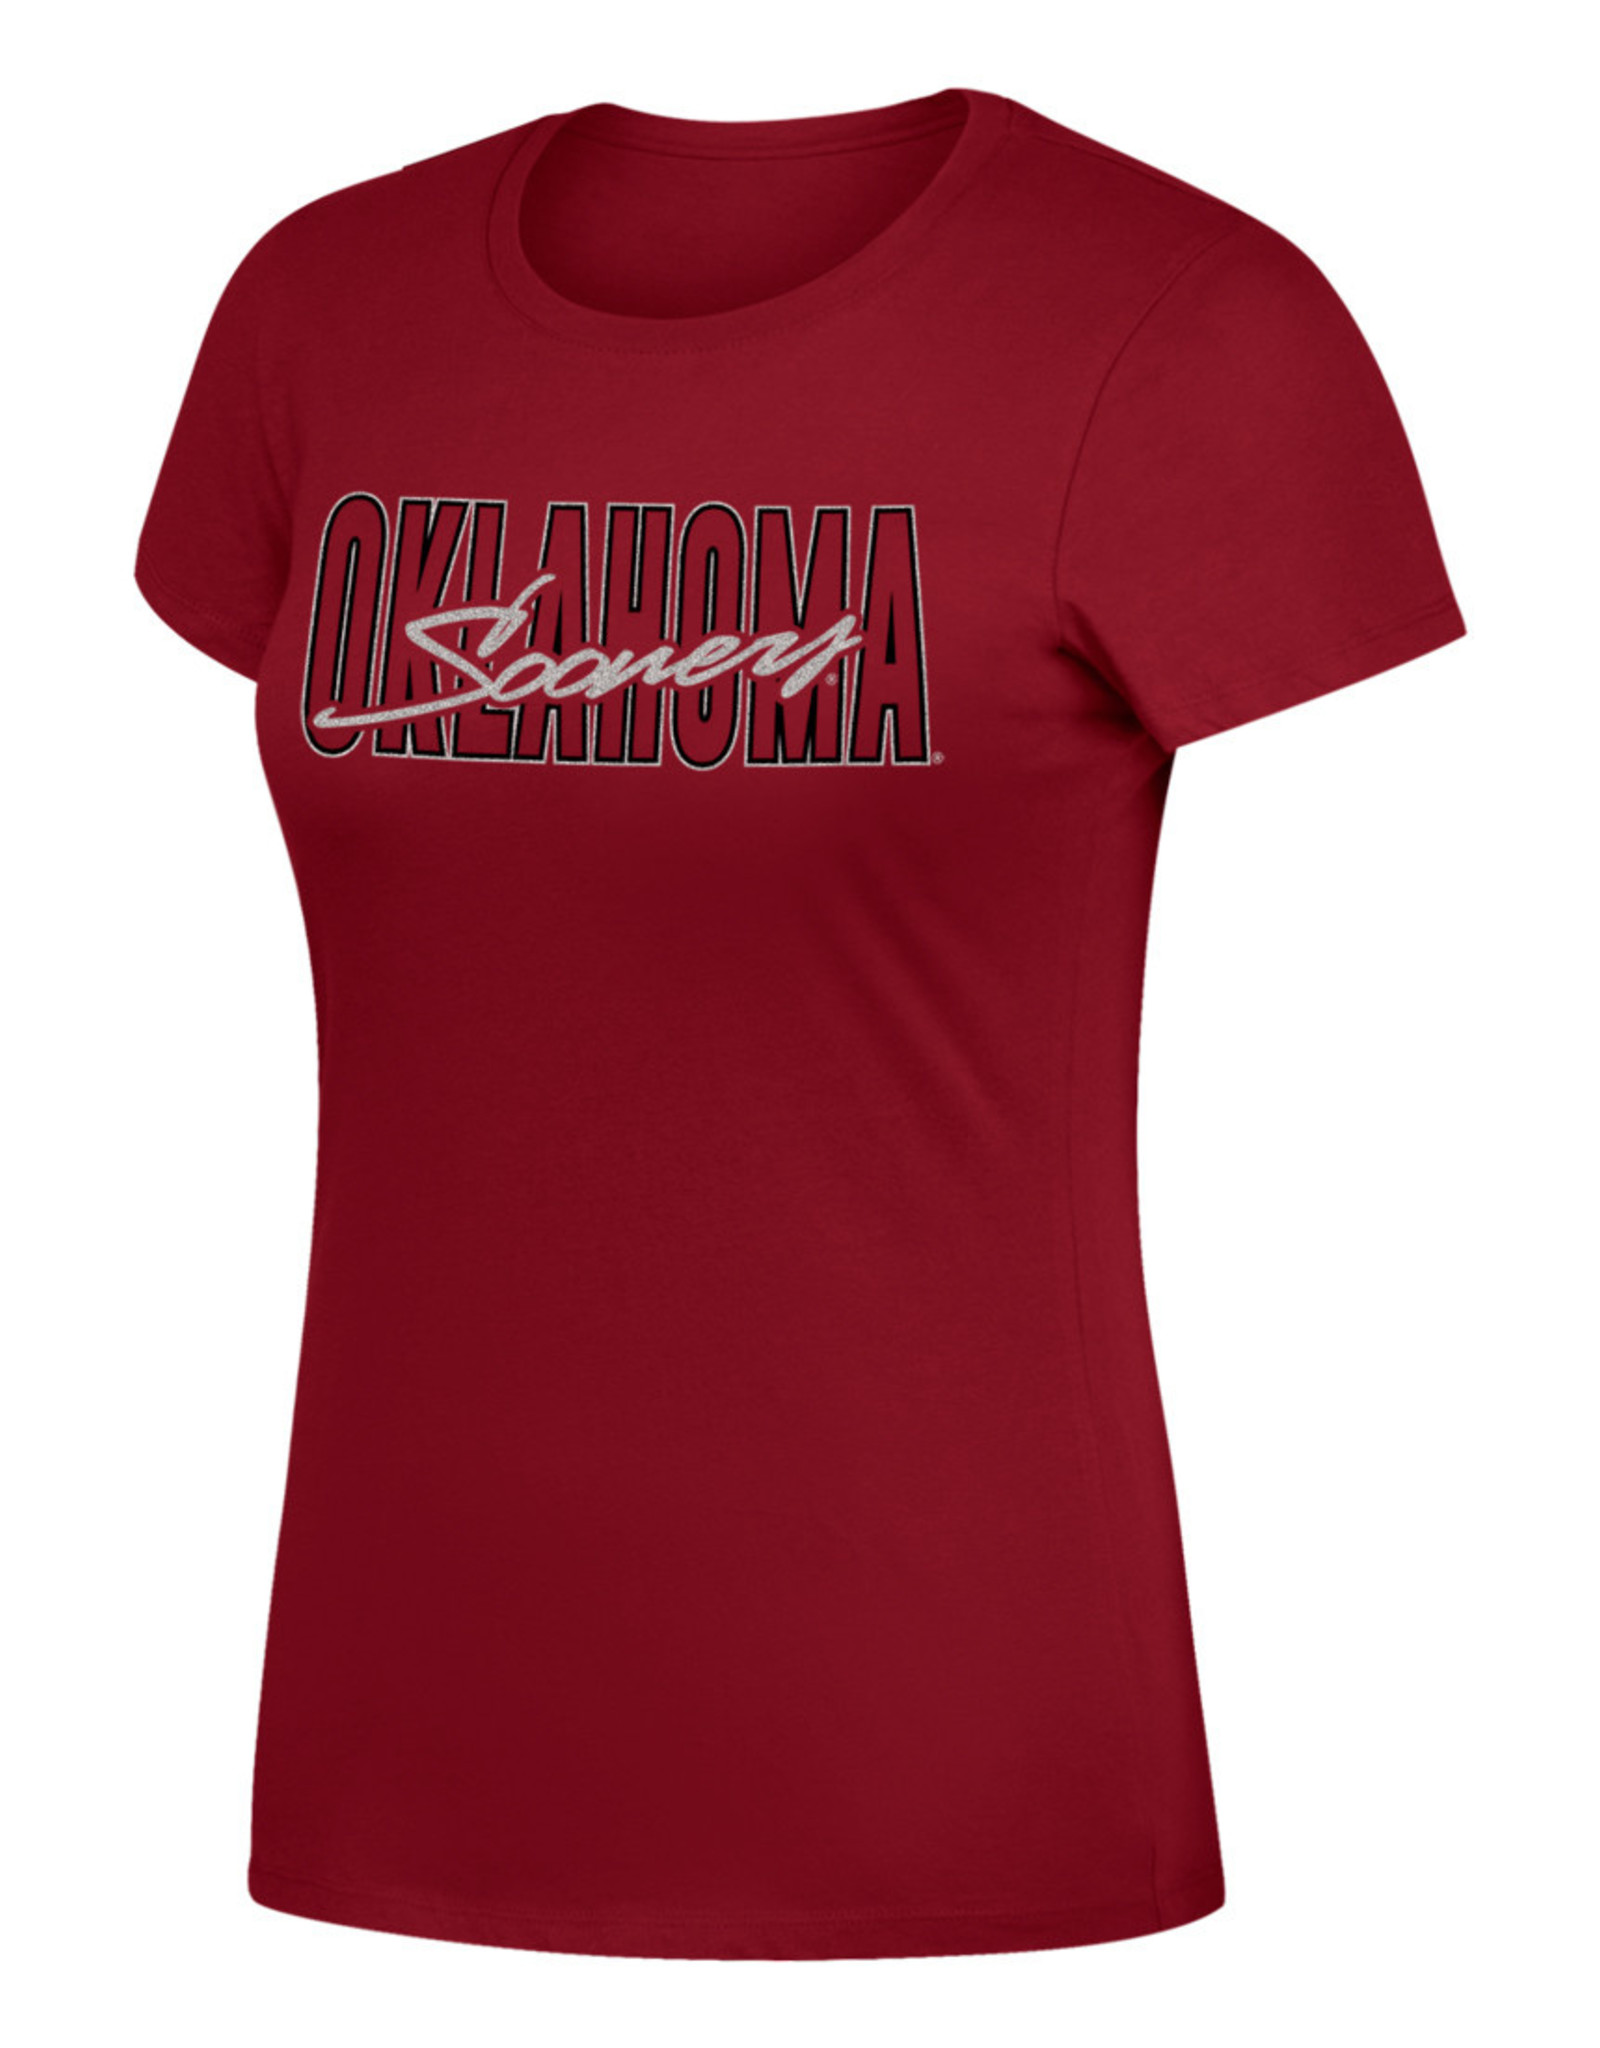 Top of the World Women's TOW Favorite Crew Tee w/ Metalic Silver